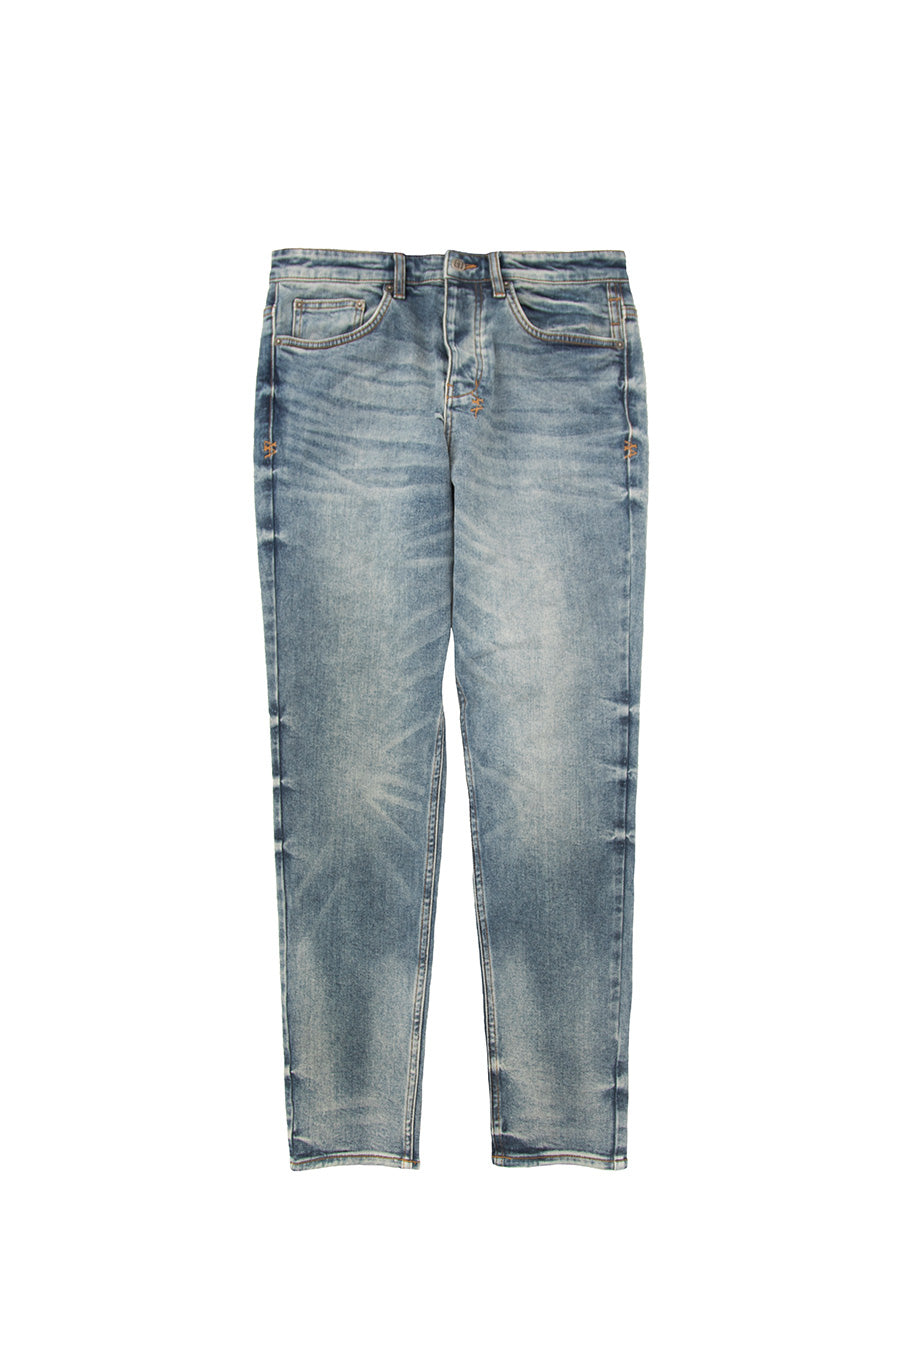 Ksubi - Blue Wolf Gang Pure Dynamite Jeans | 1032 SPACE